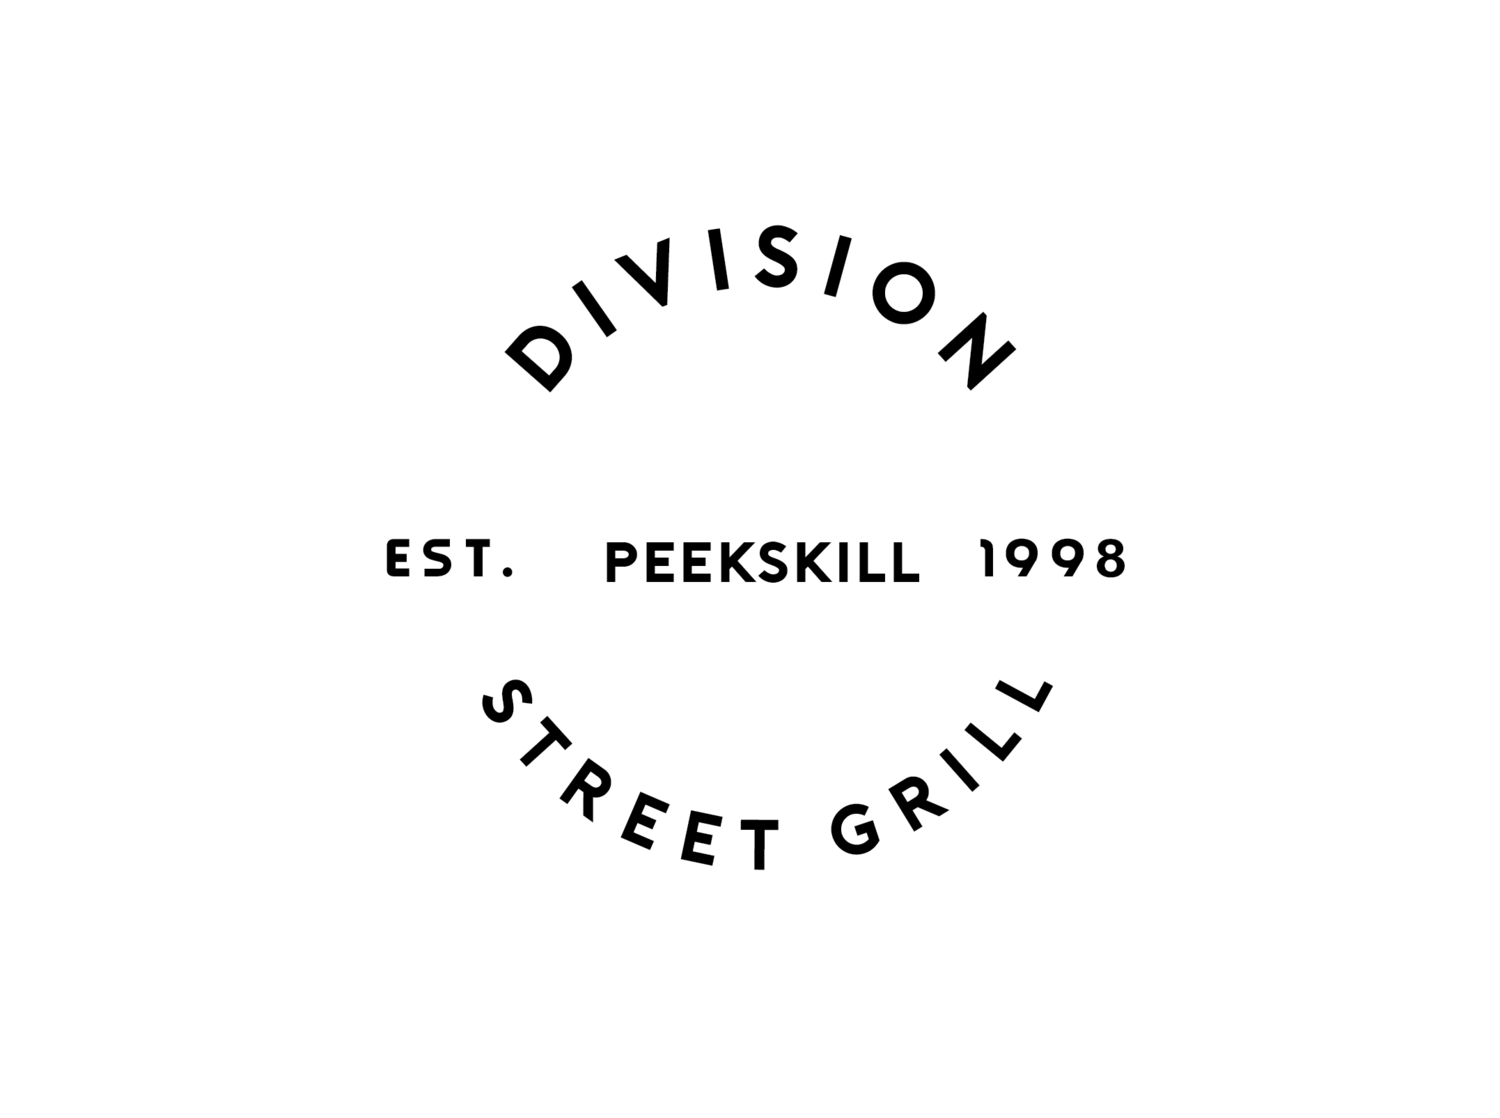 Division Street Grill